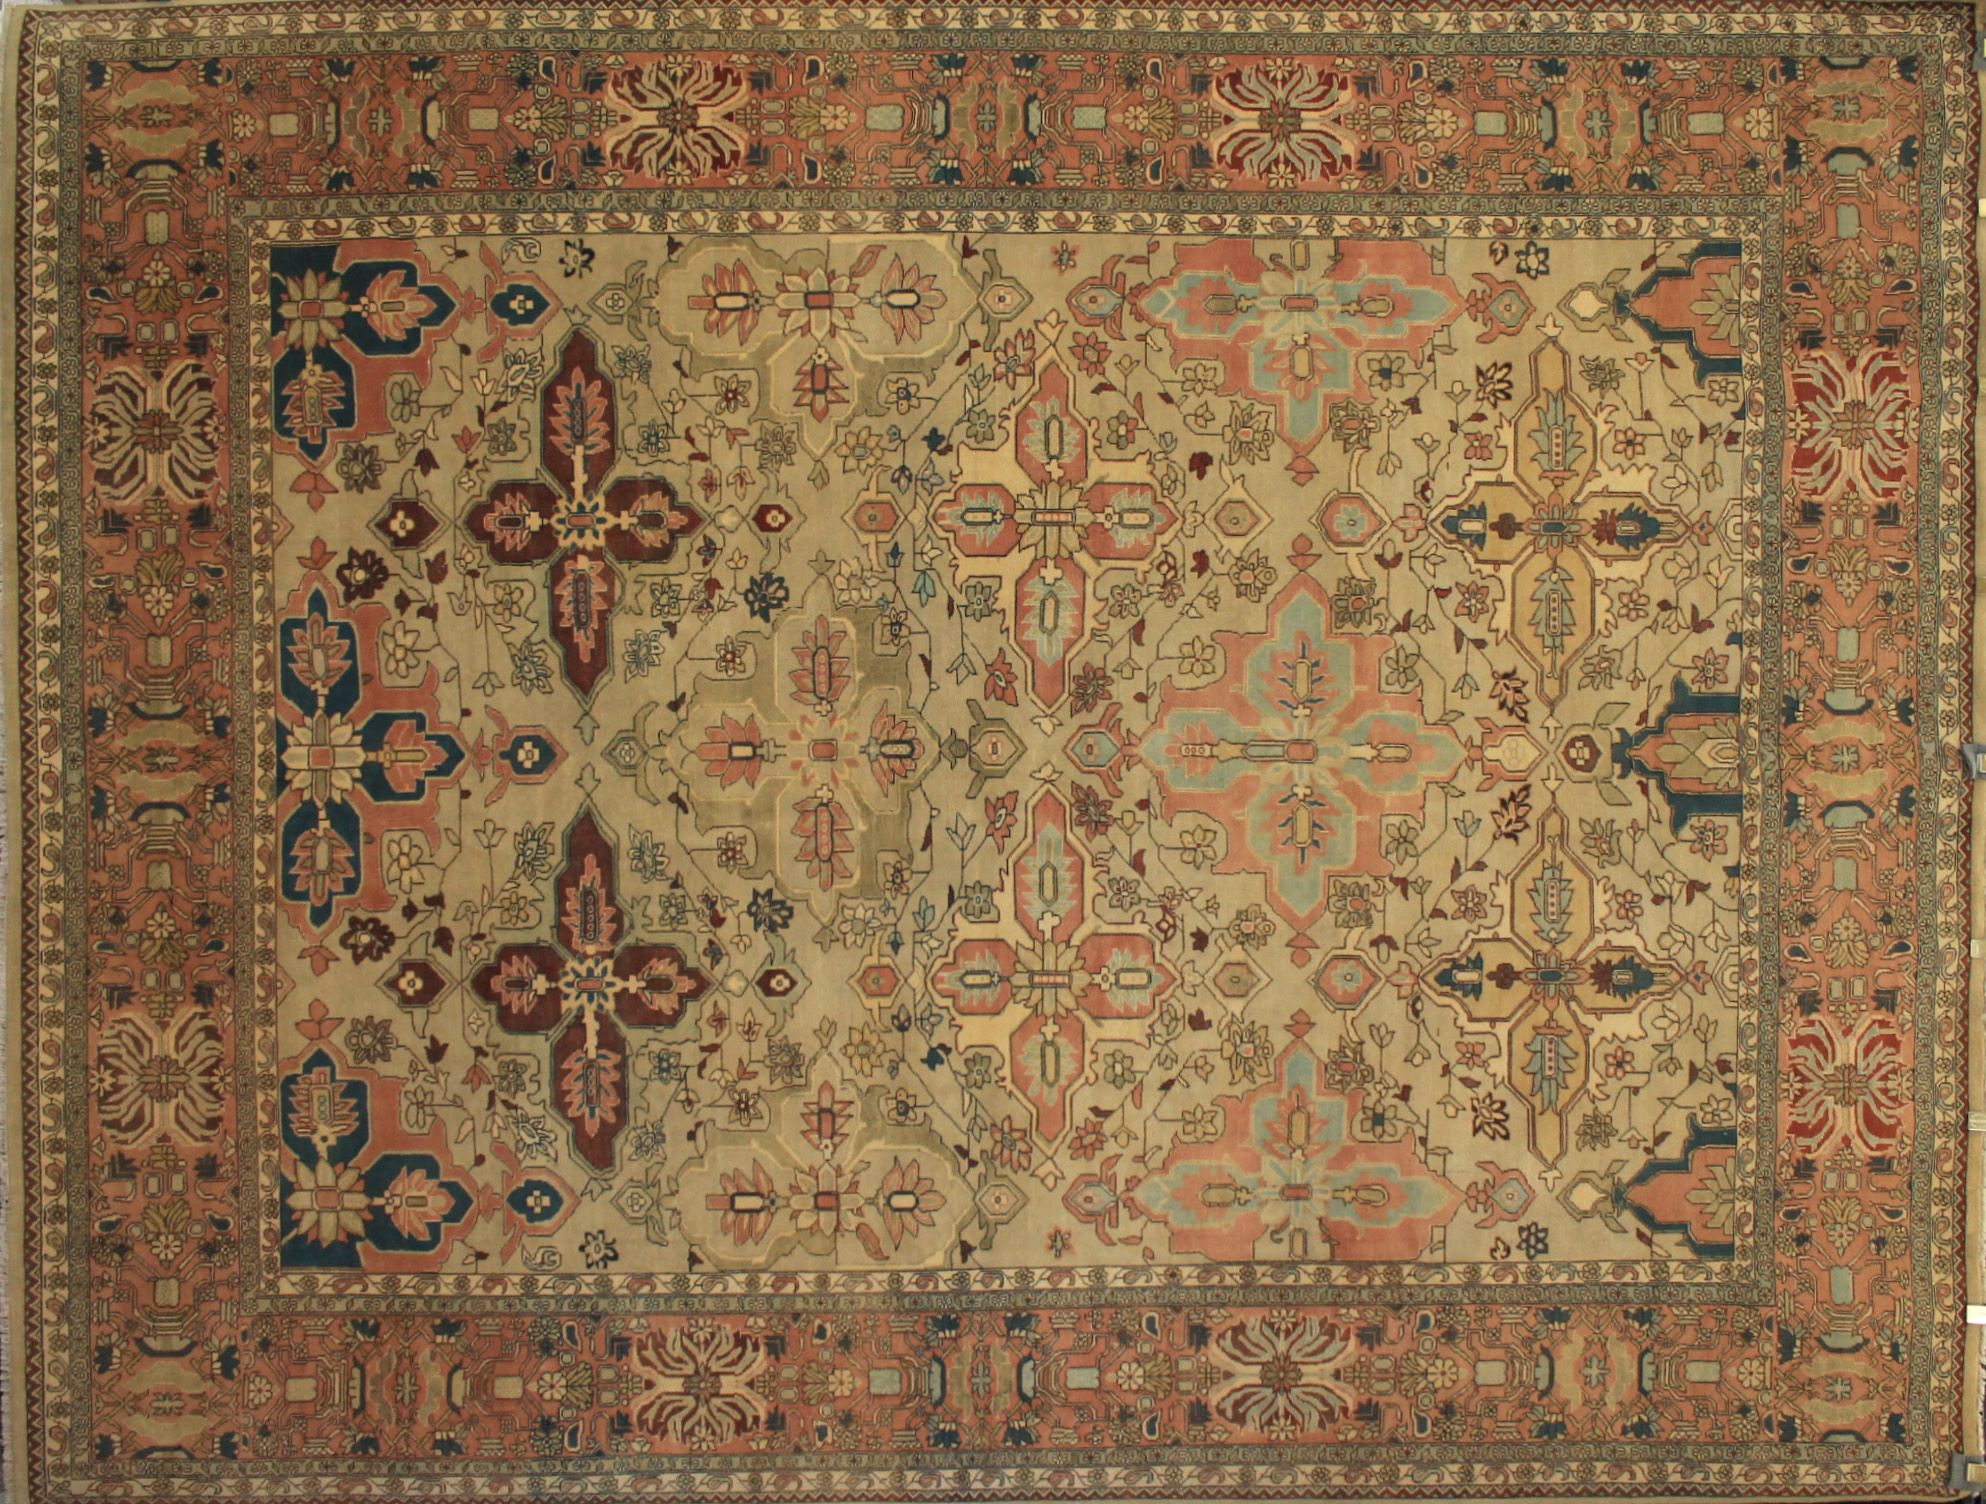 9x12 Antique Revival Hand Knotted Wool Area Rug - MR11538